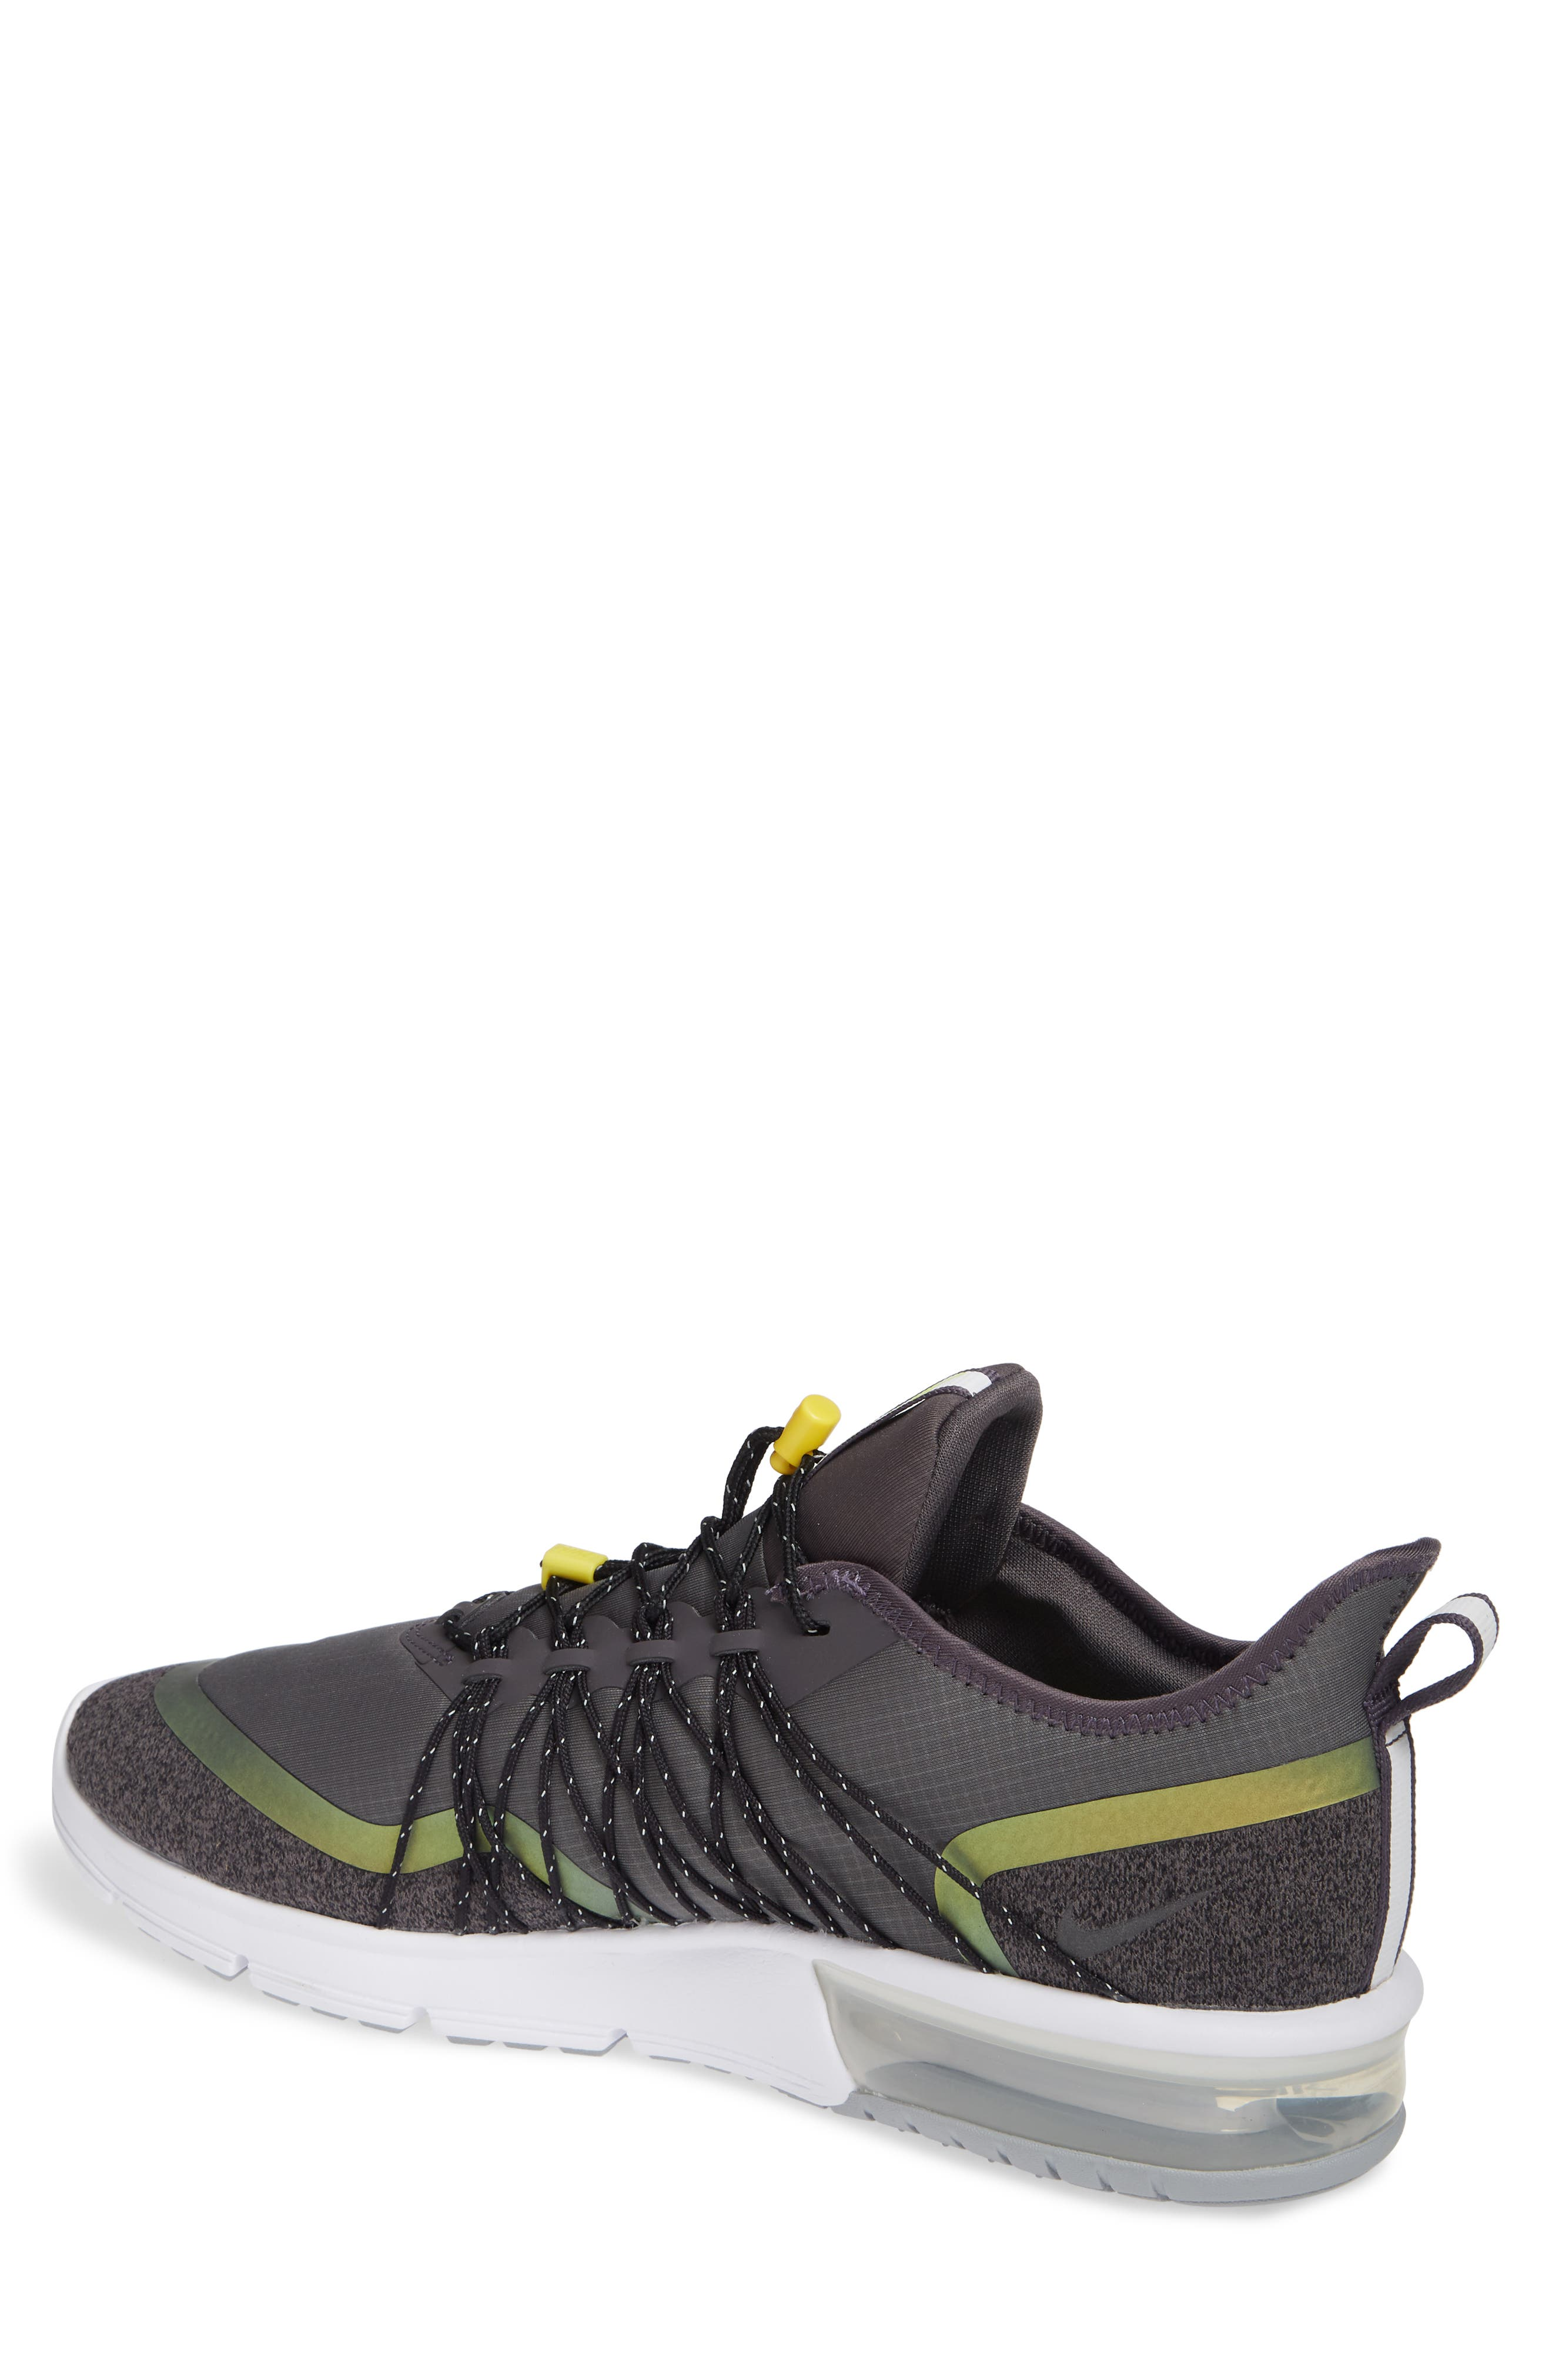 Air Max Sequent 4 Utility Running Shoe,                             Alternate thumbnail 2, color,                             THUNDER GREY/ VOLT